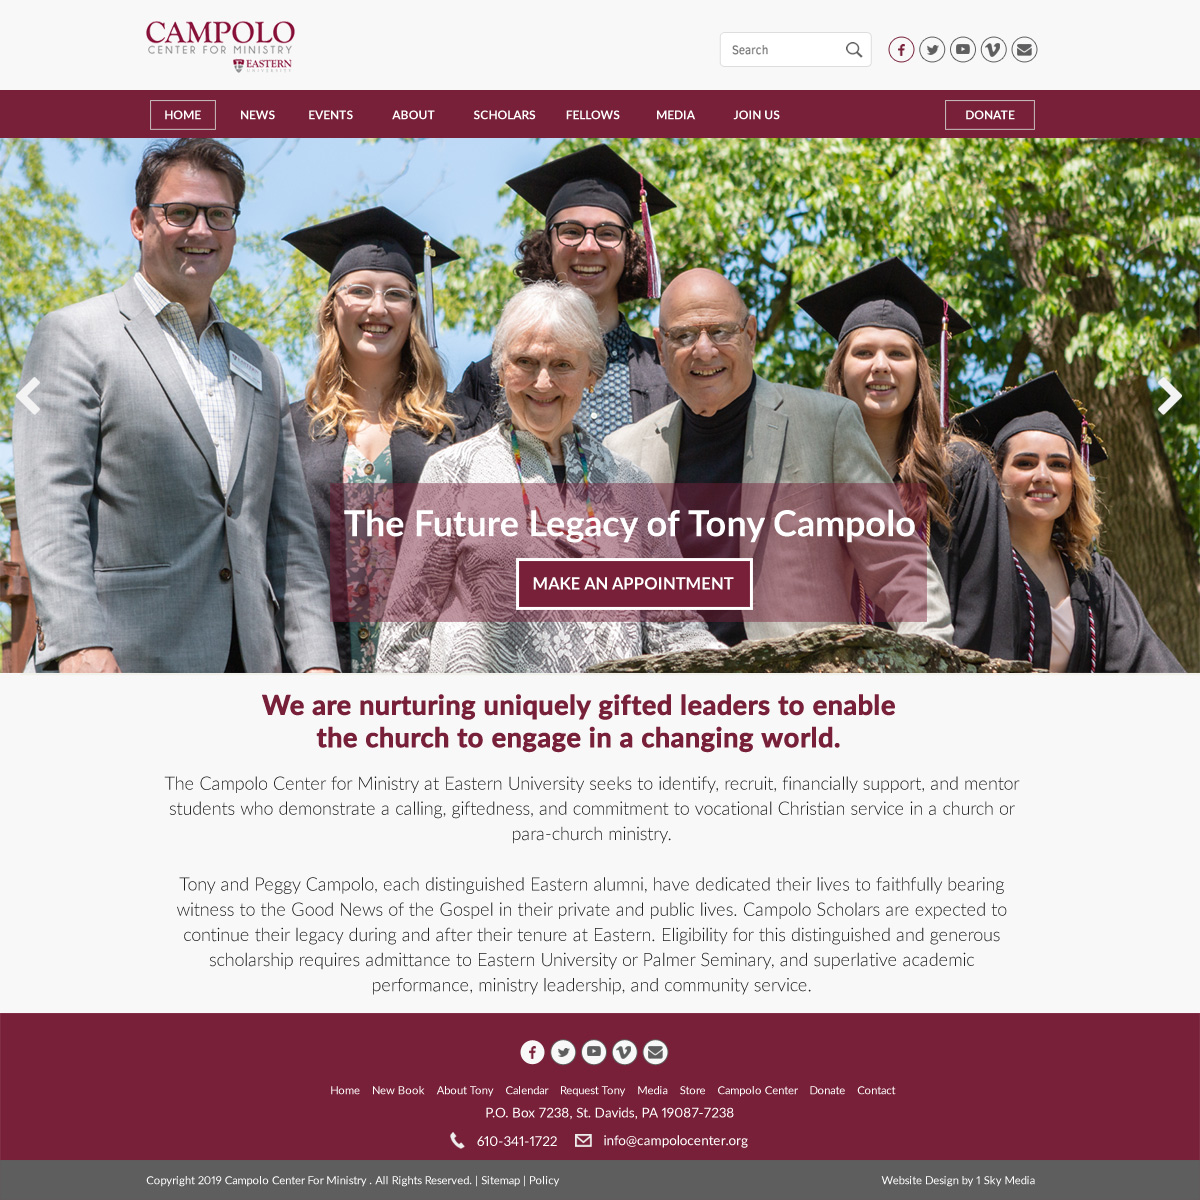 Campolo center - College website design